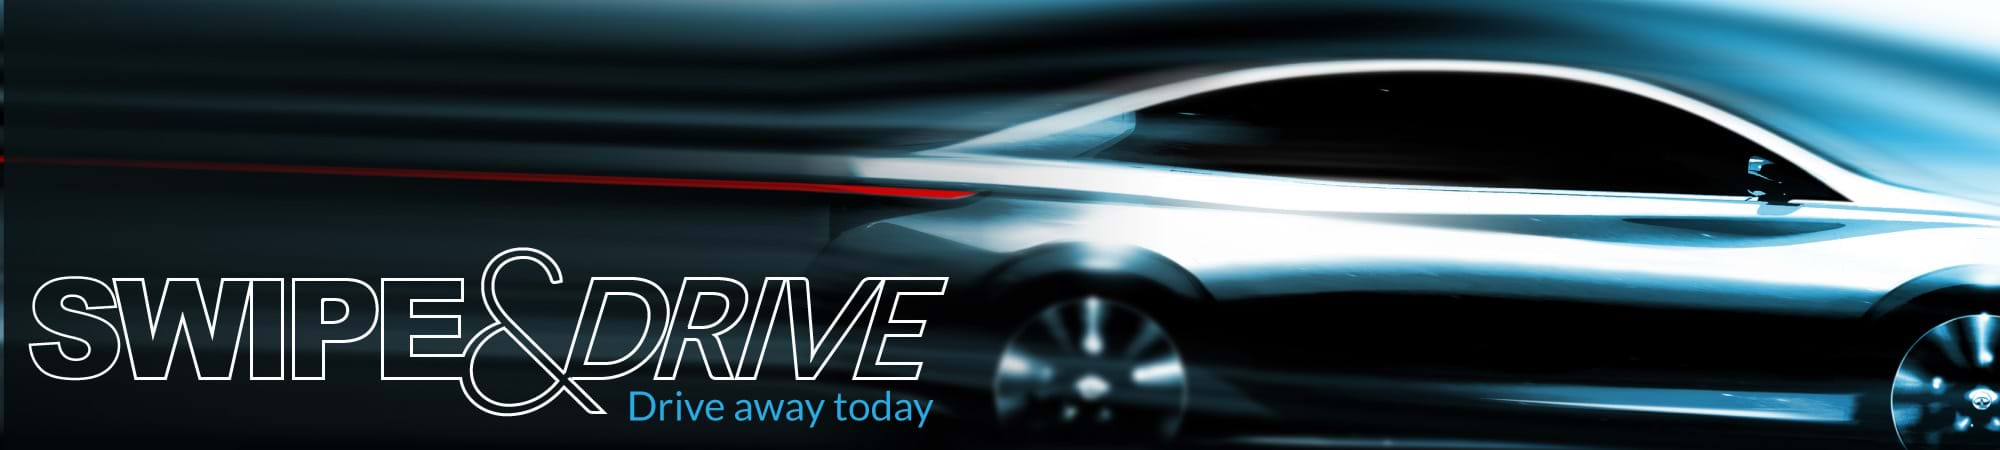 Swipe and Drive - Drive away today